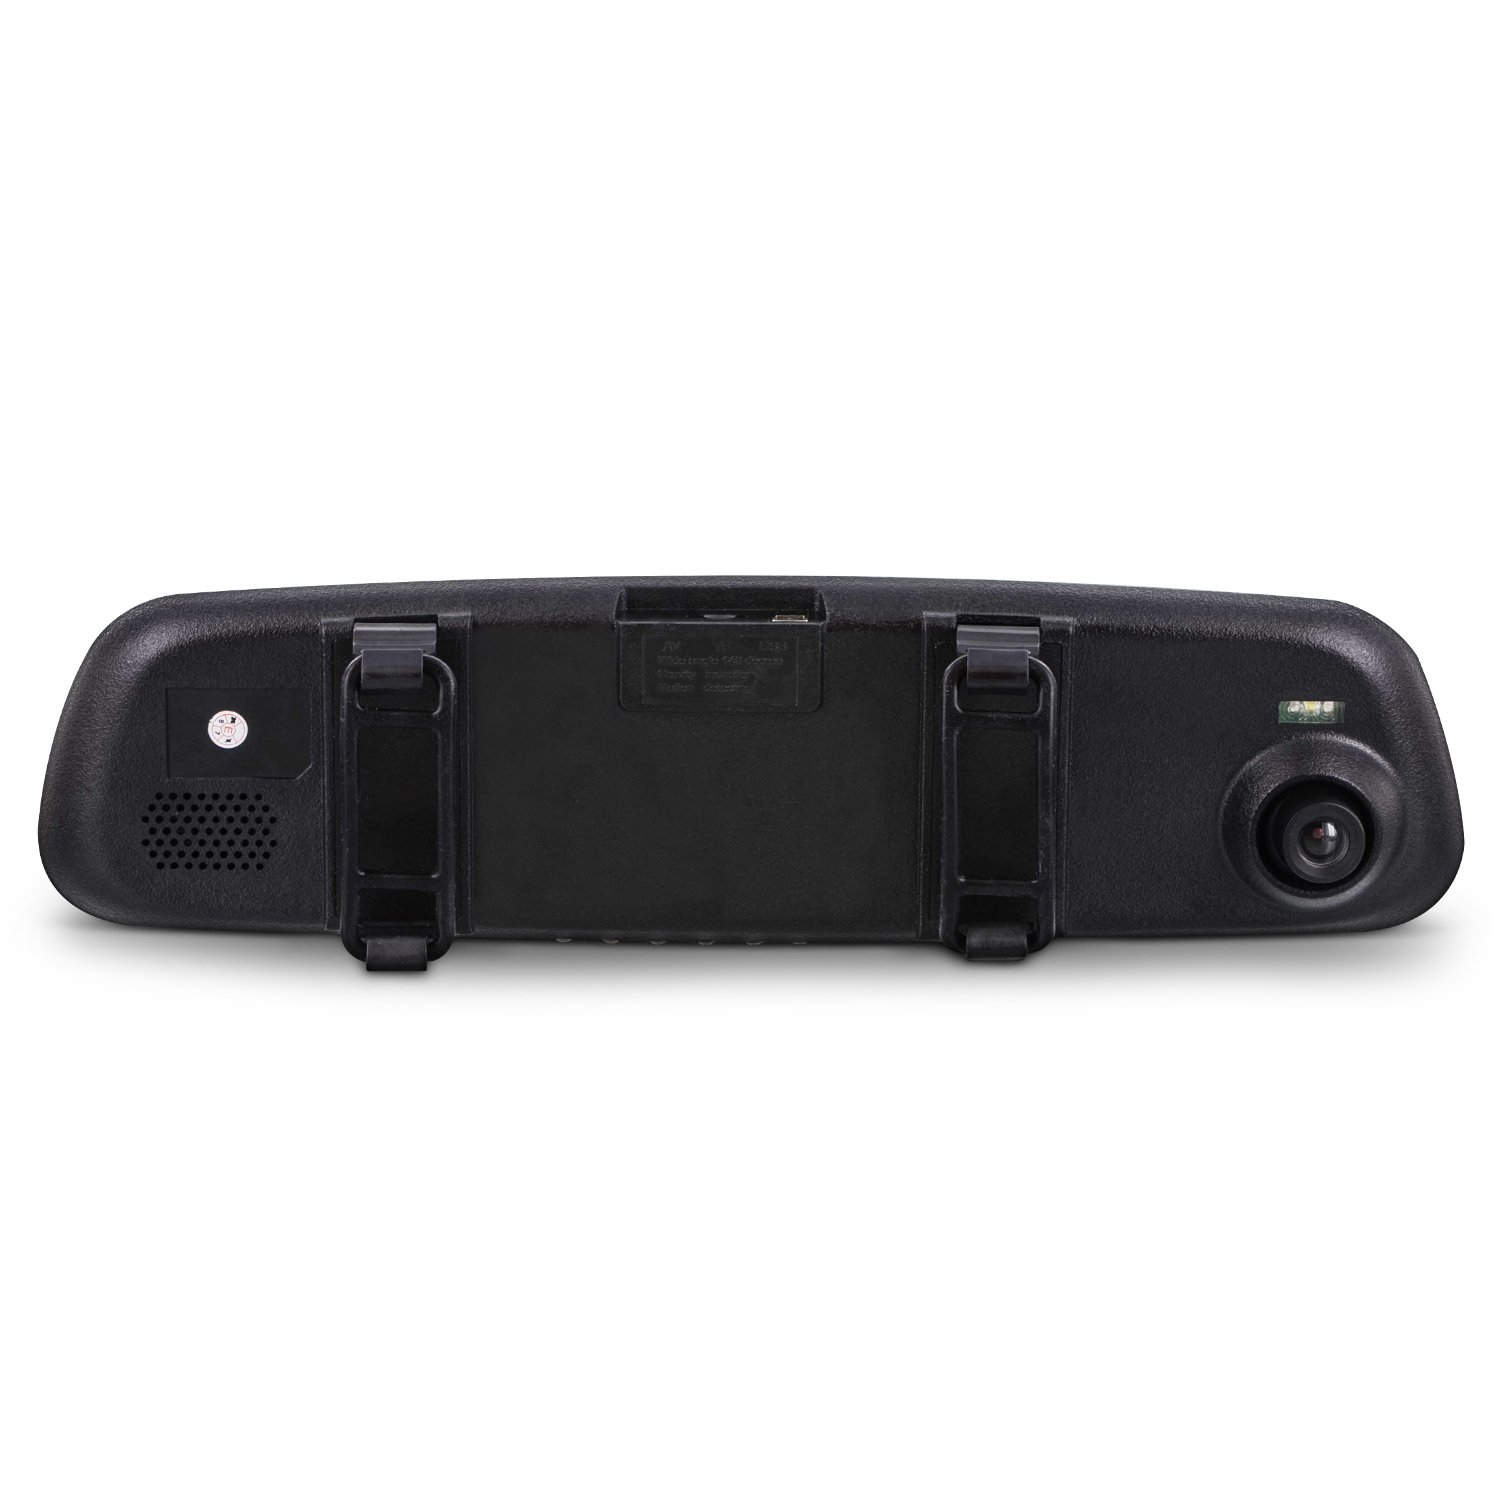 2.6 in LCD Display Aduro MirrorCam Rear View Mirror with Front Video Camcorder for Safety in HD Wide Angle Lens Multiple Languages Seamless Video//Picture//Voice Recording